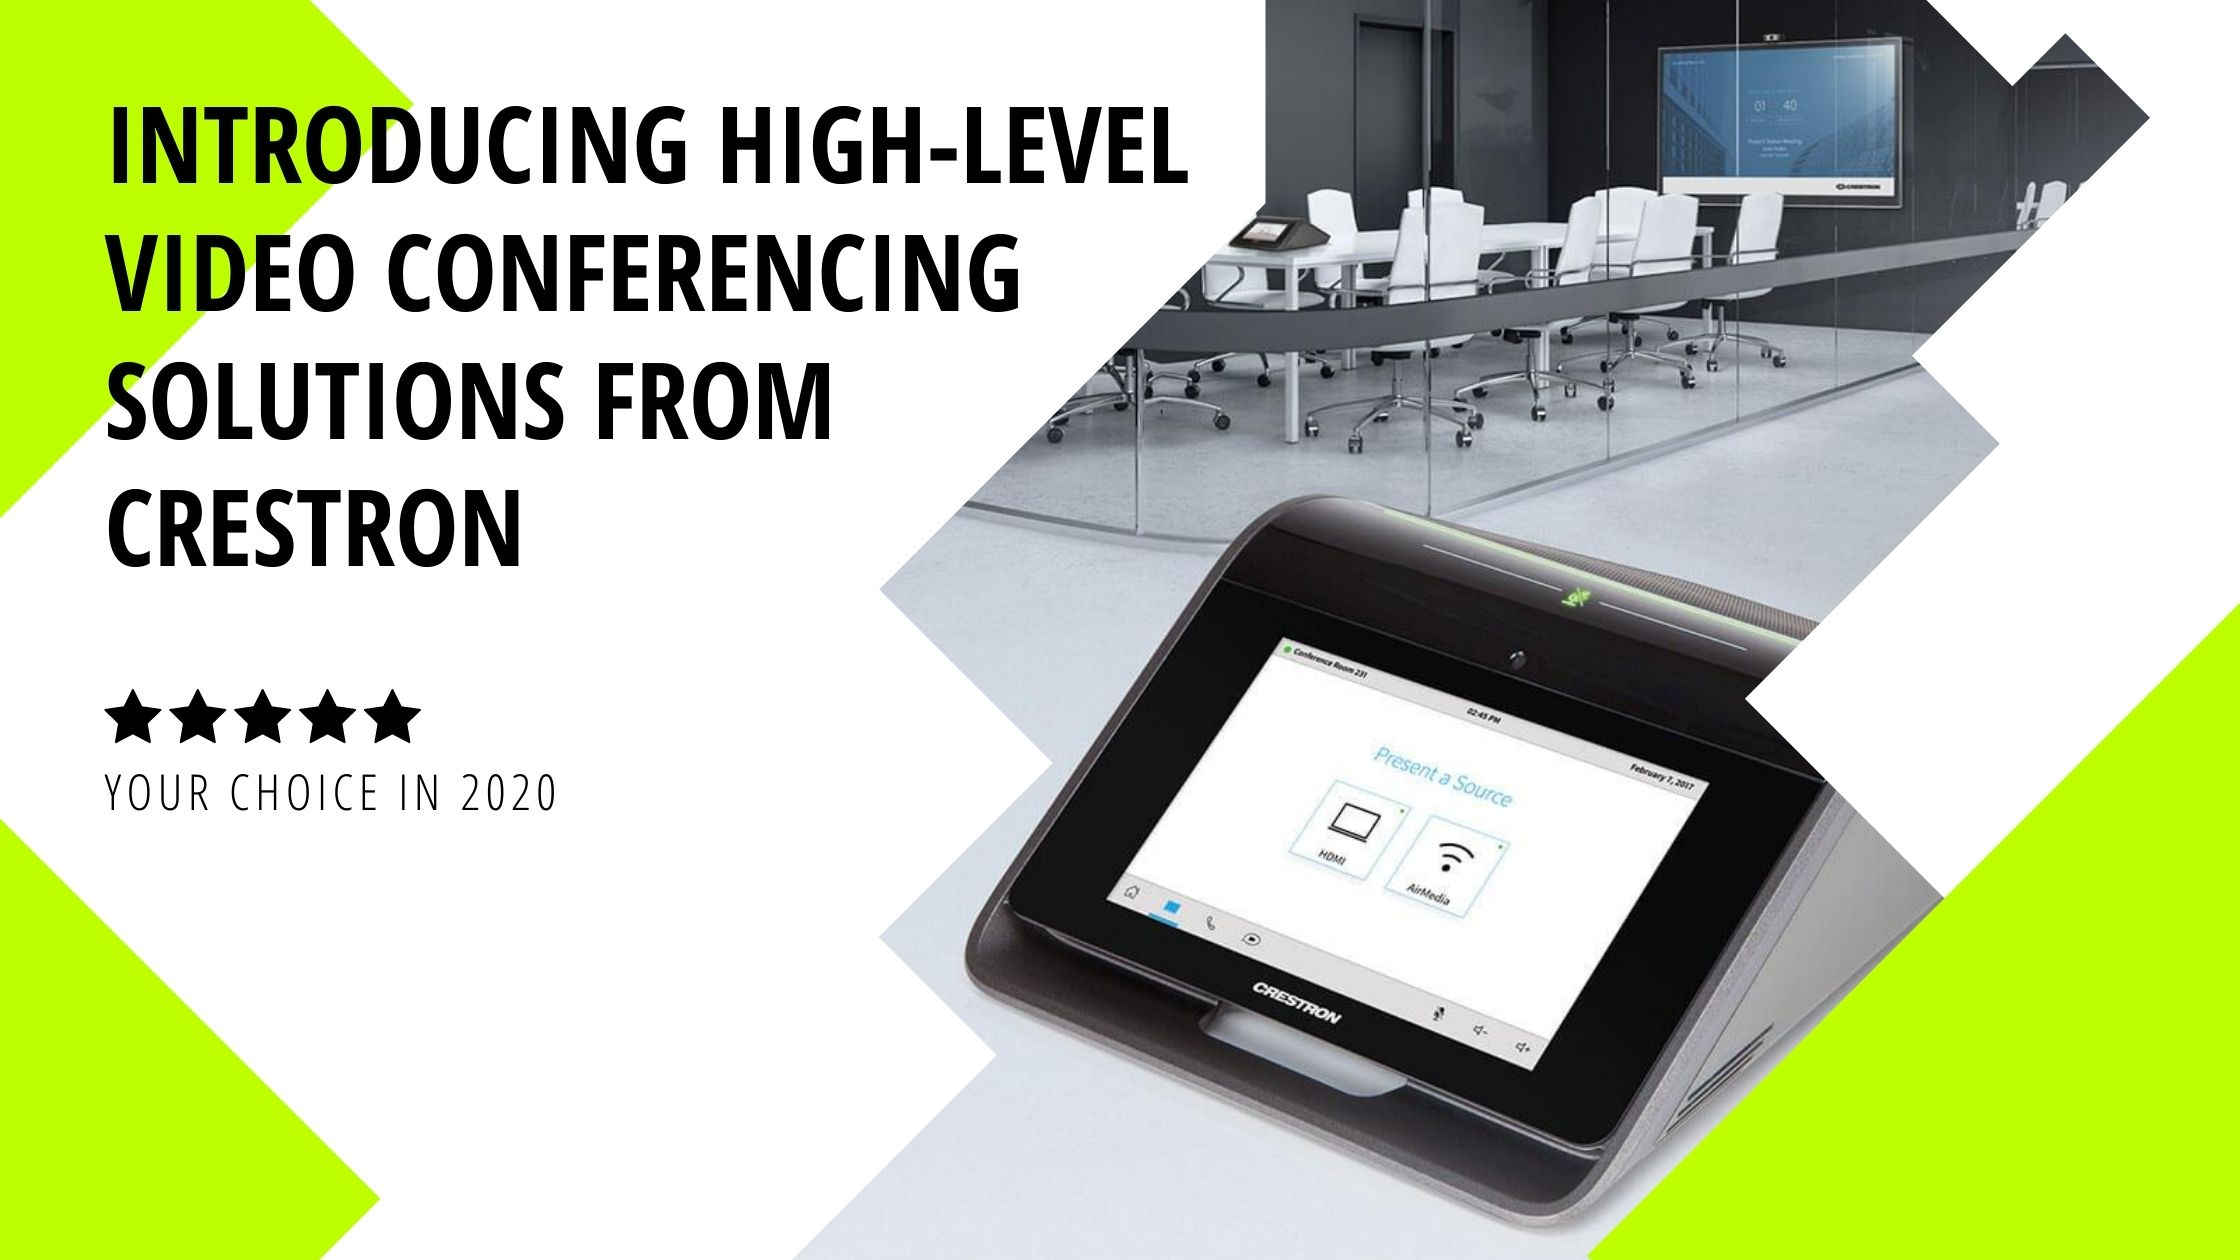 Introducing High-Level Video Conferencing Solutions from Crestron